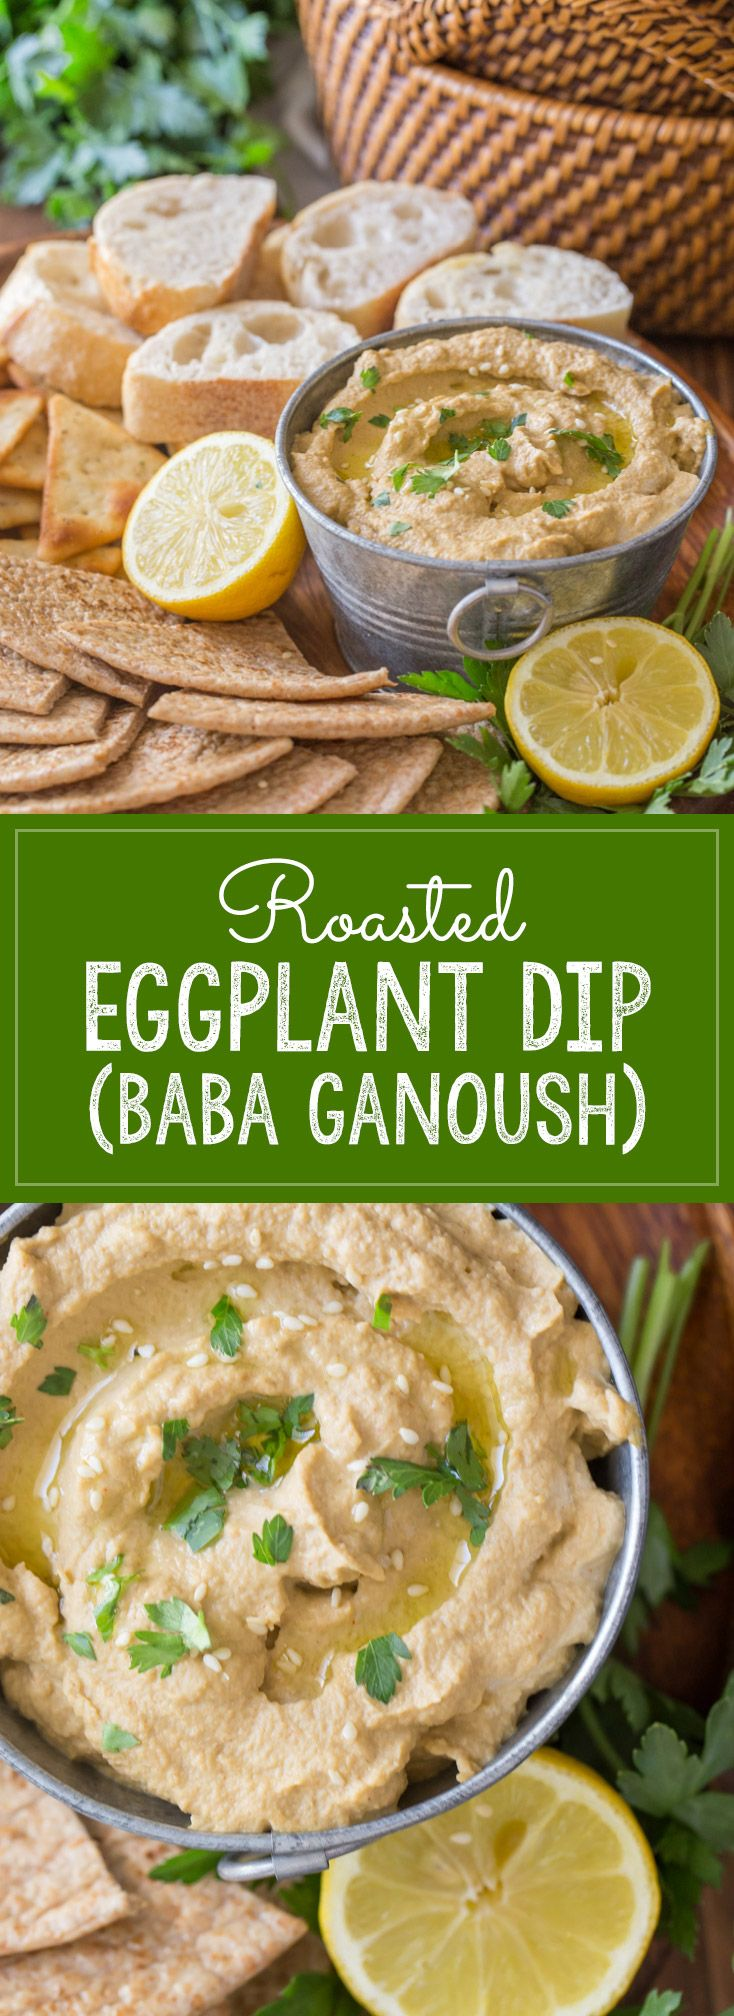 A delicious dip made with roasted eggplant, perfect as a summer side dish or for snacking.